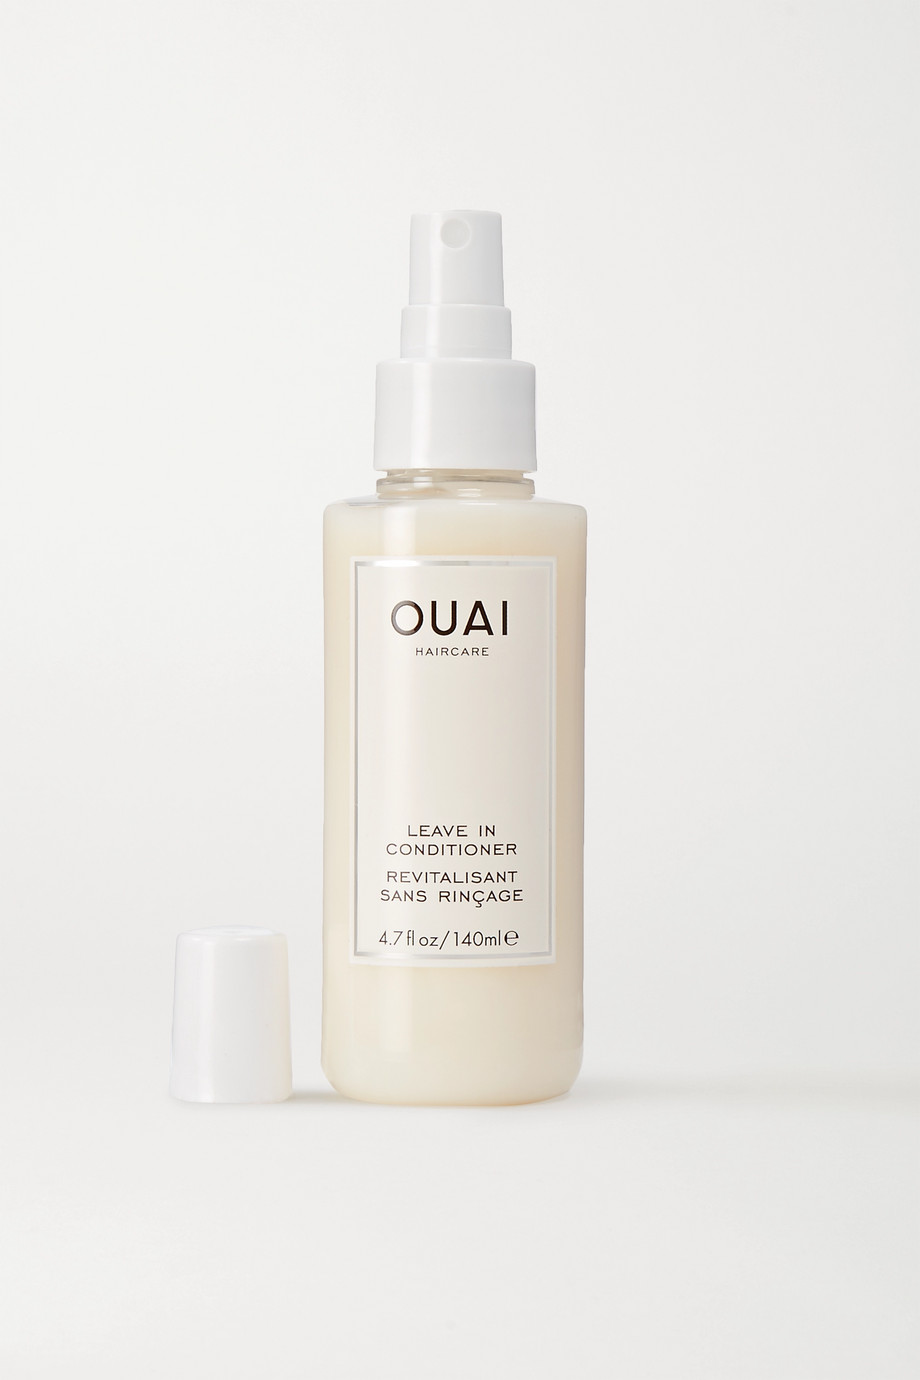 OUAI Haircare Leave In Conditioner, 140ml